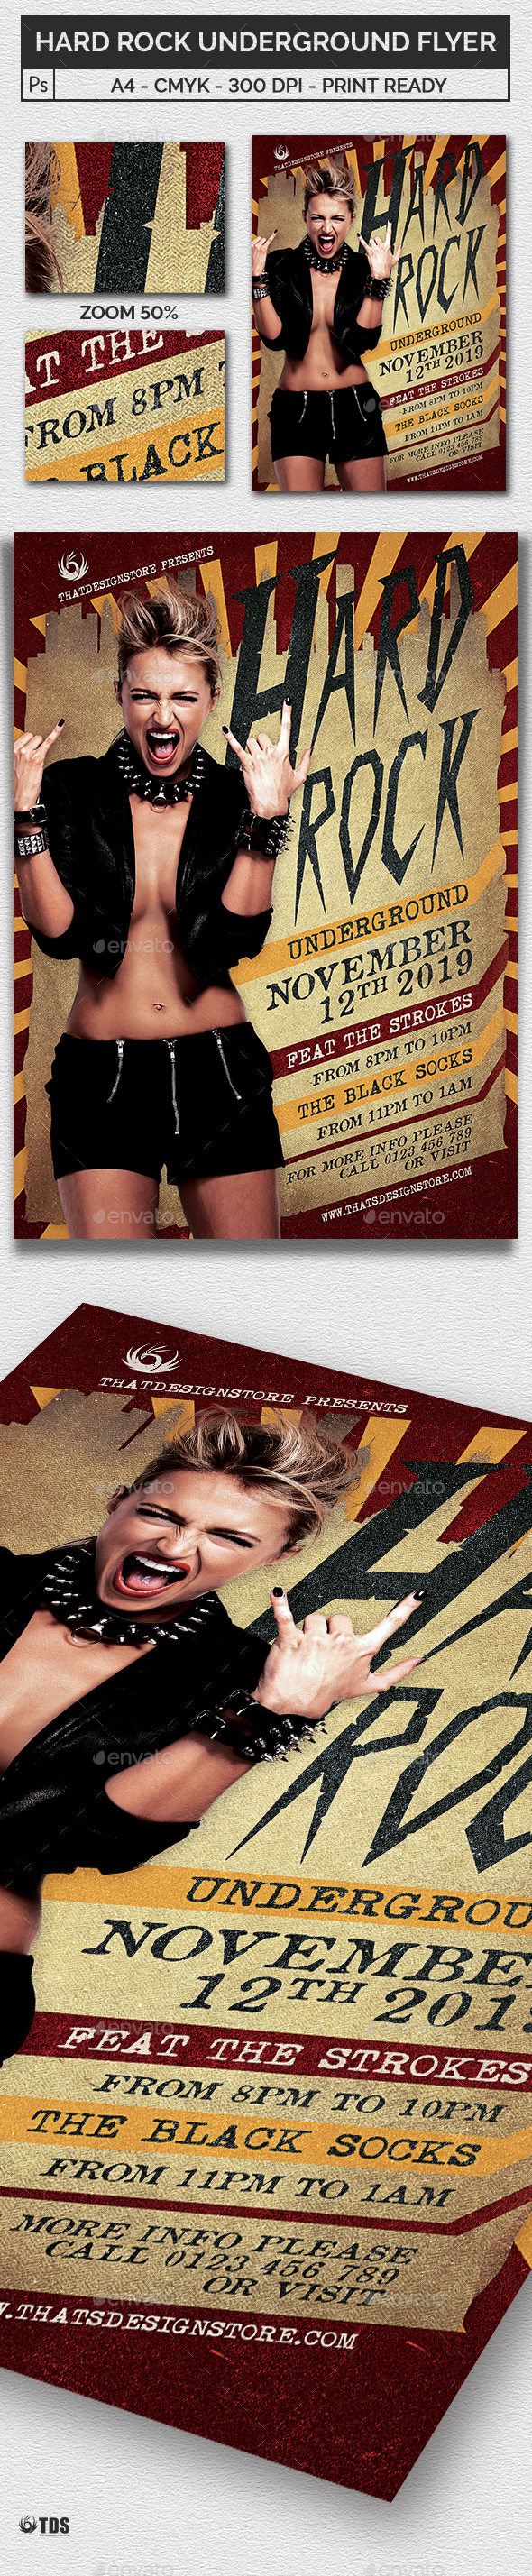 Hard Rock Underground Flyer Template - Concerts Events